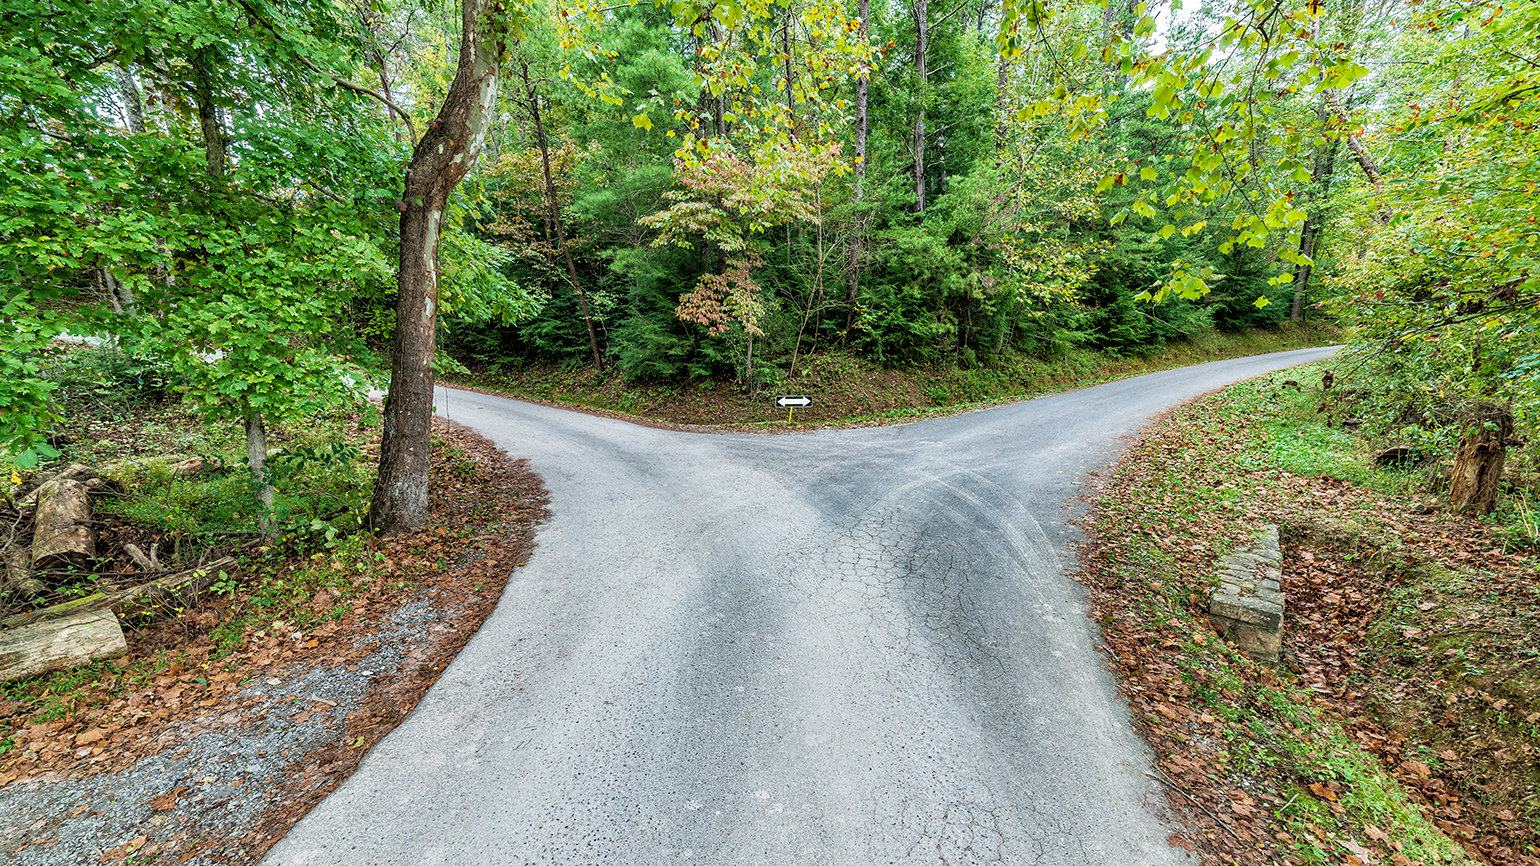 a crossroads in the country